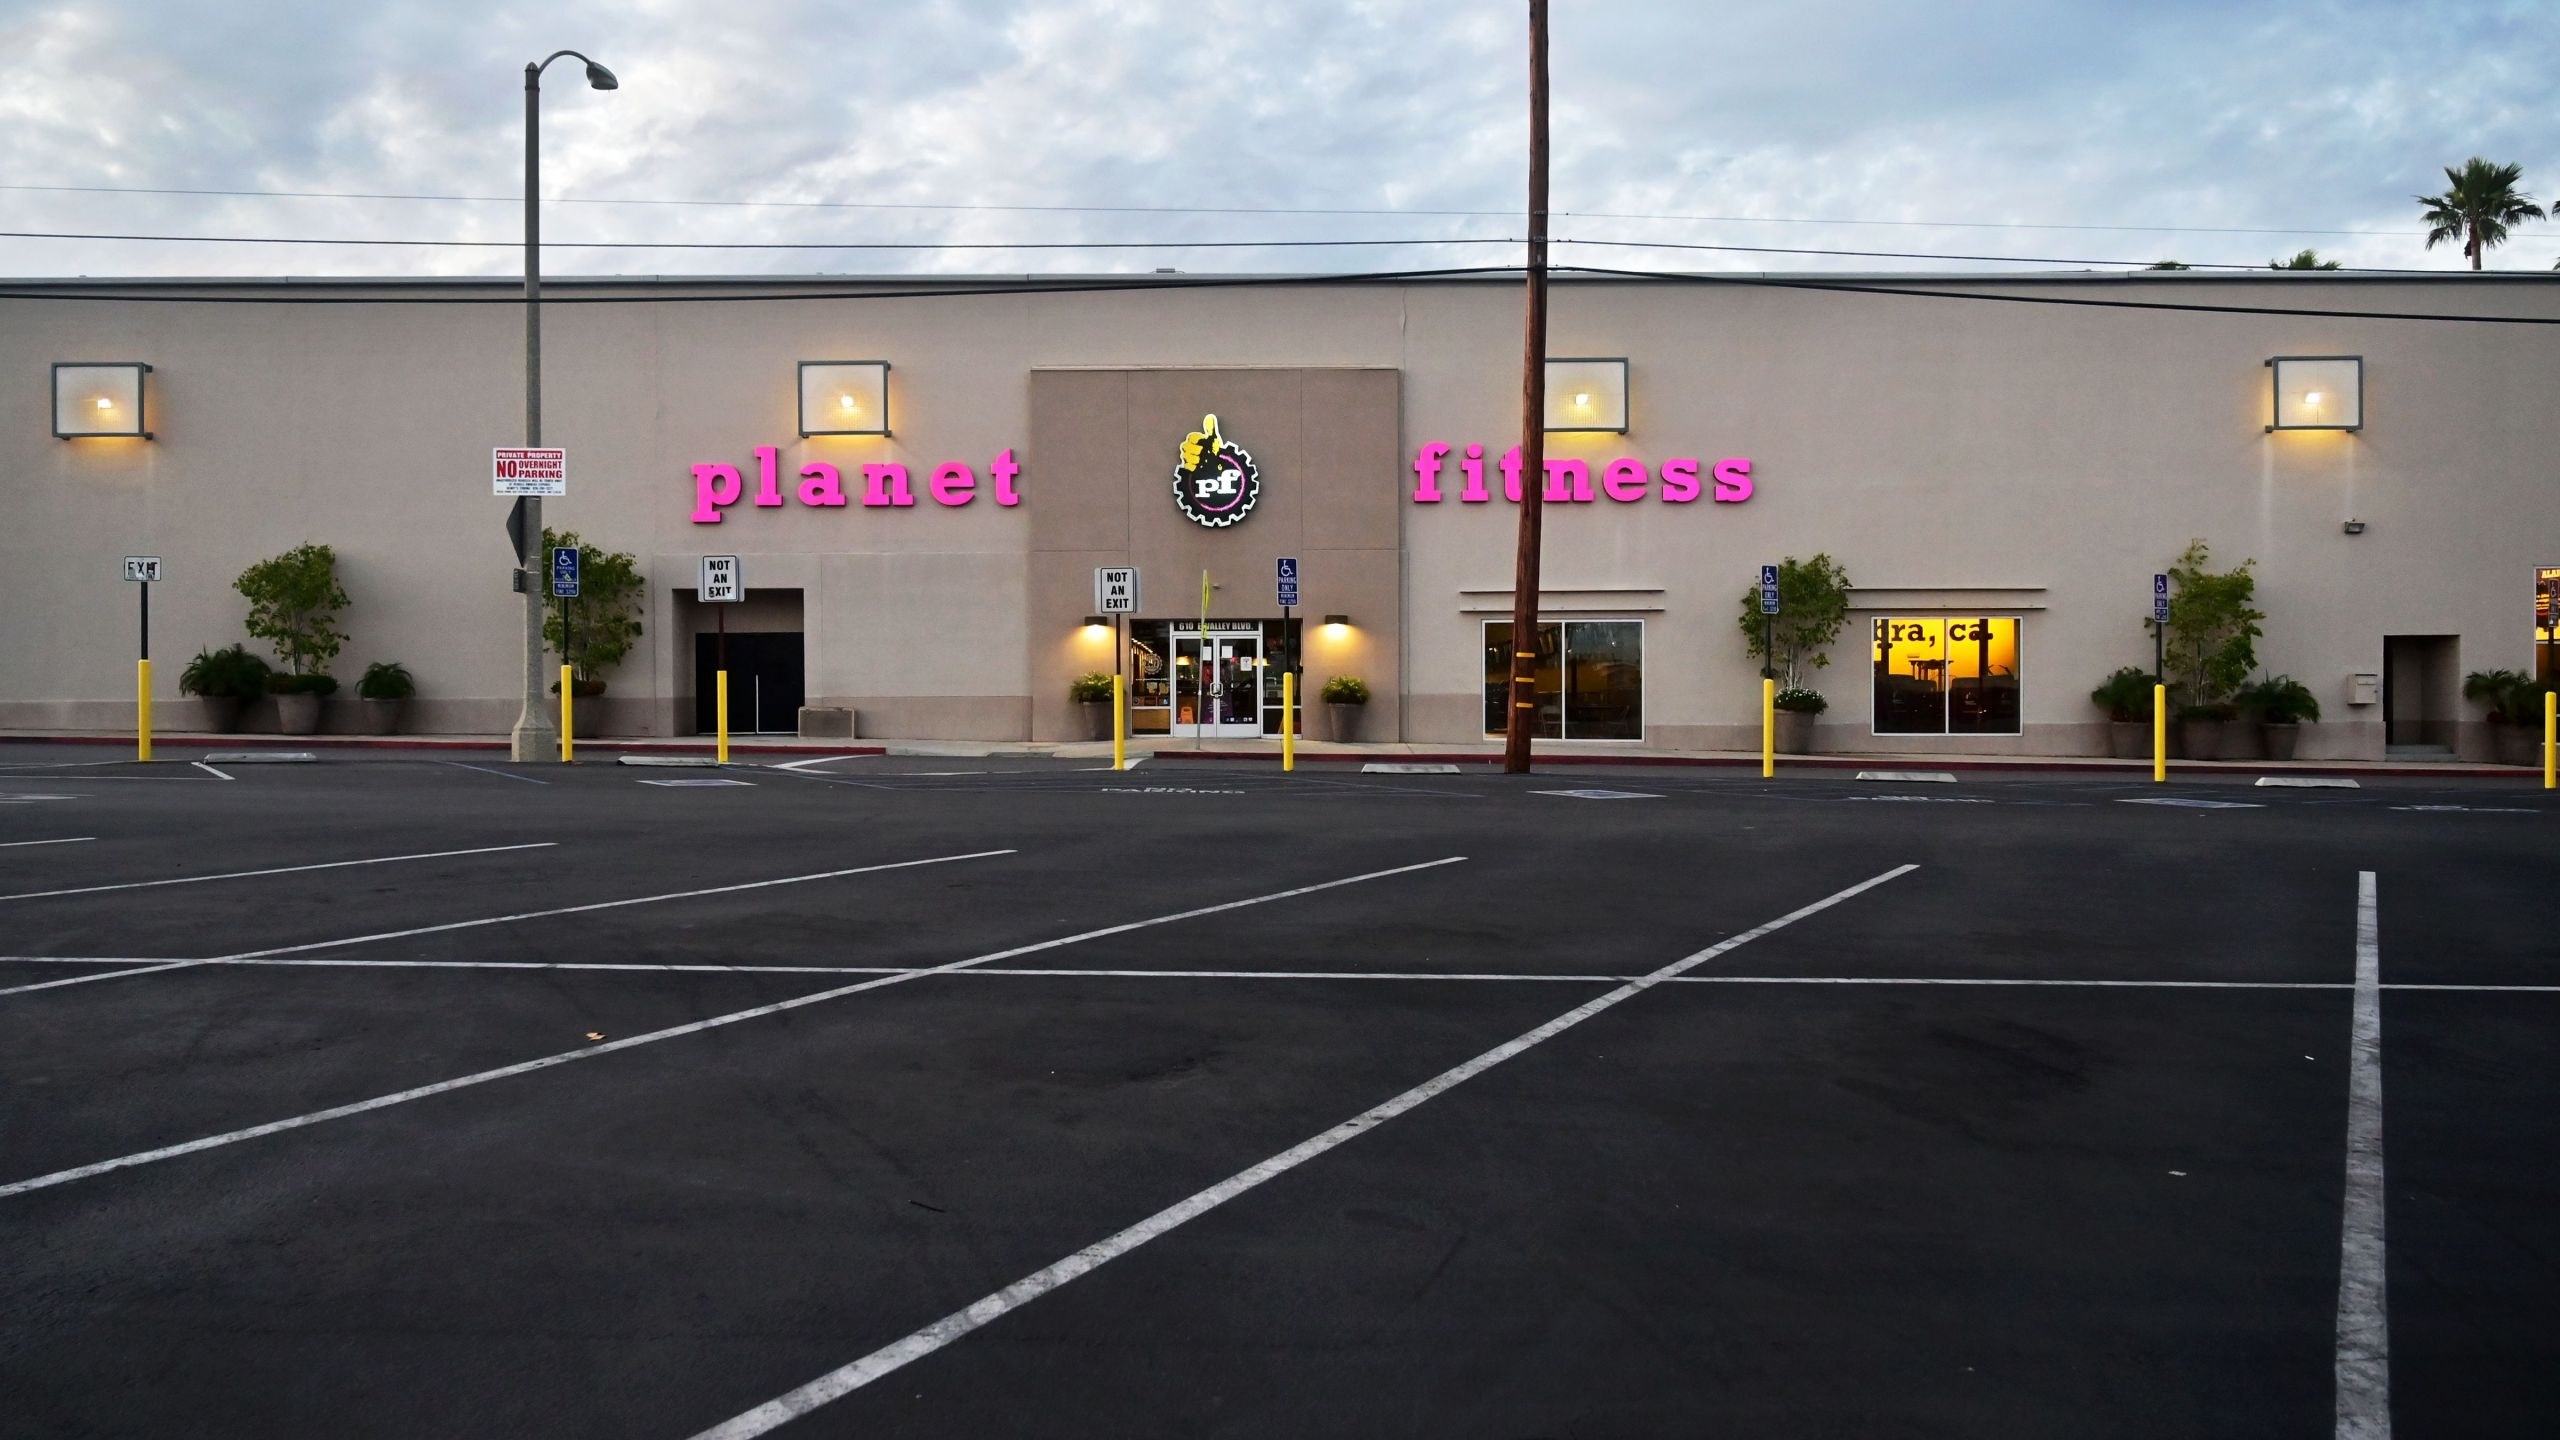 An empty parking lot is pictured in front a Planet Fitness gym and fitness club in Alhambra on May 12, 2020. (FREDERIC J. BROWN/AFP via Getty Images)